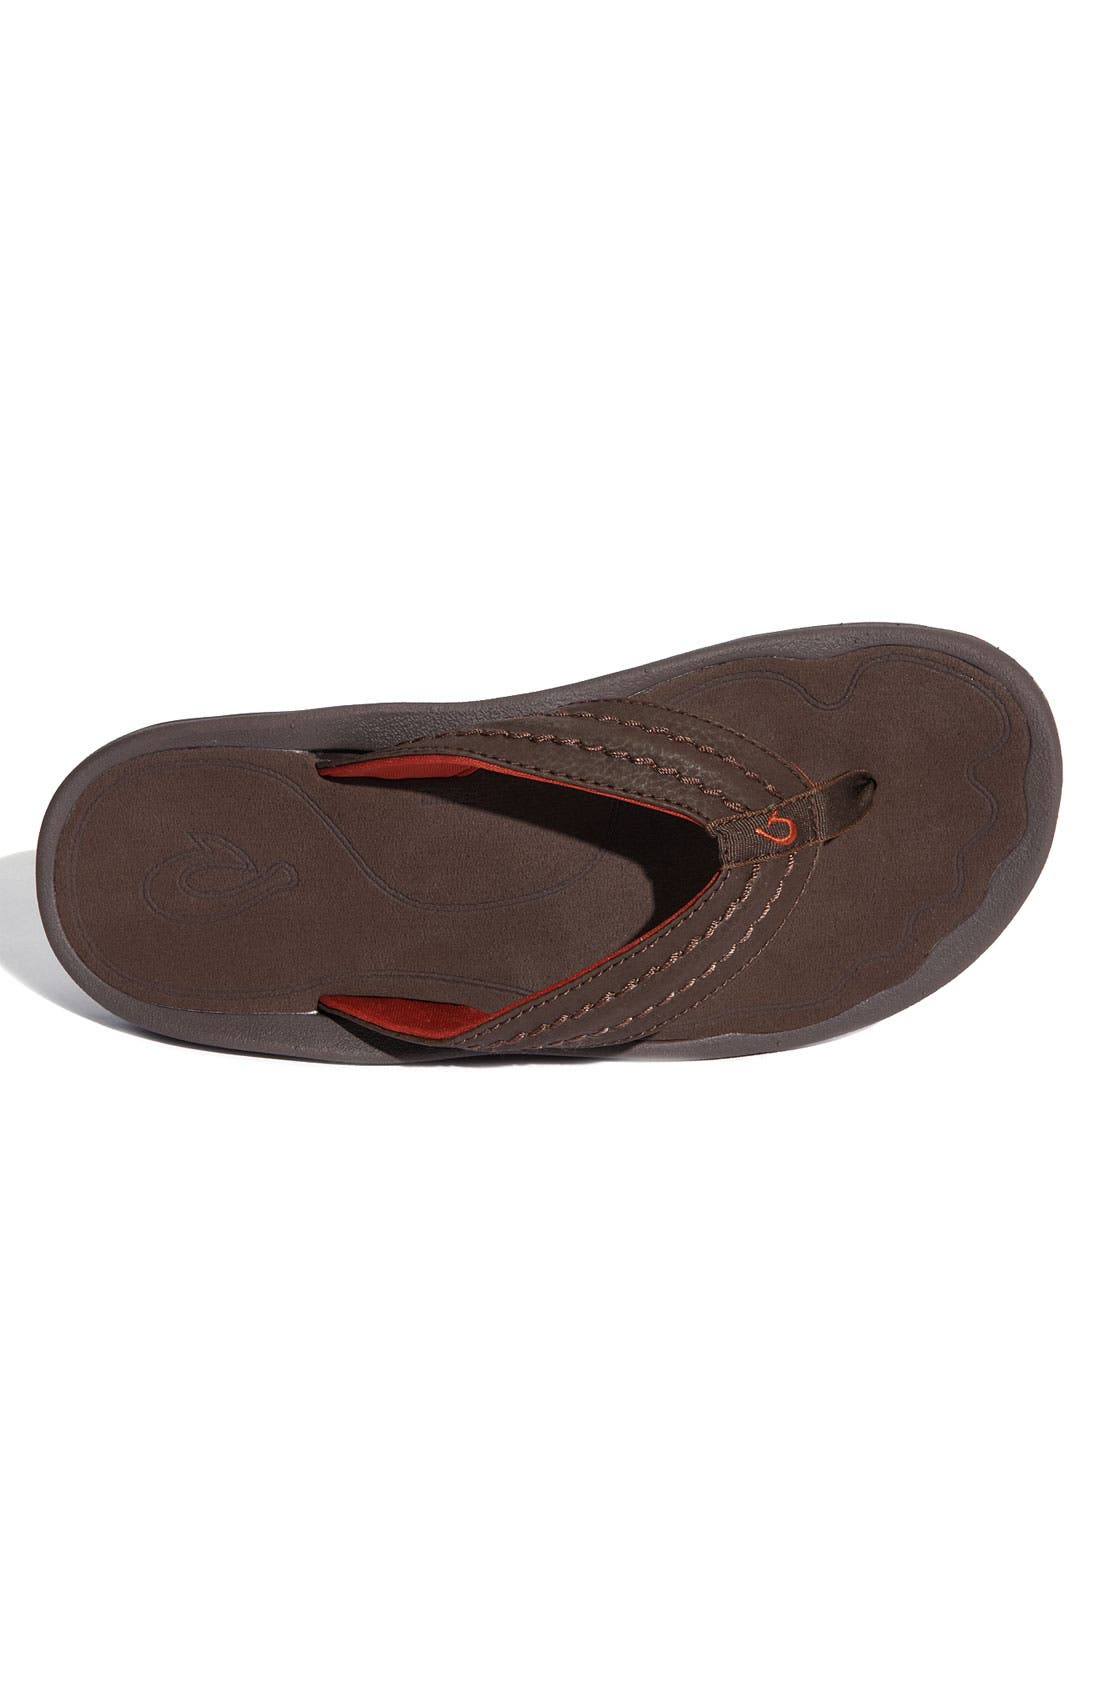 Hokua Flip Flop,                             Alternate thumbnail 3, color,                             Dark Java Faux Leather